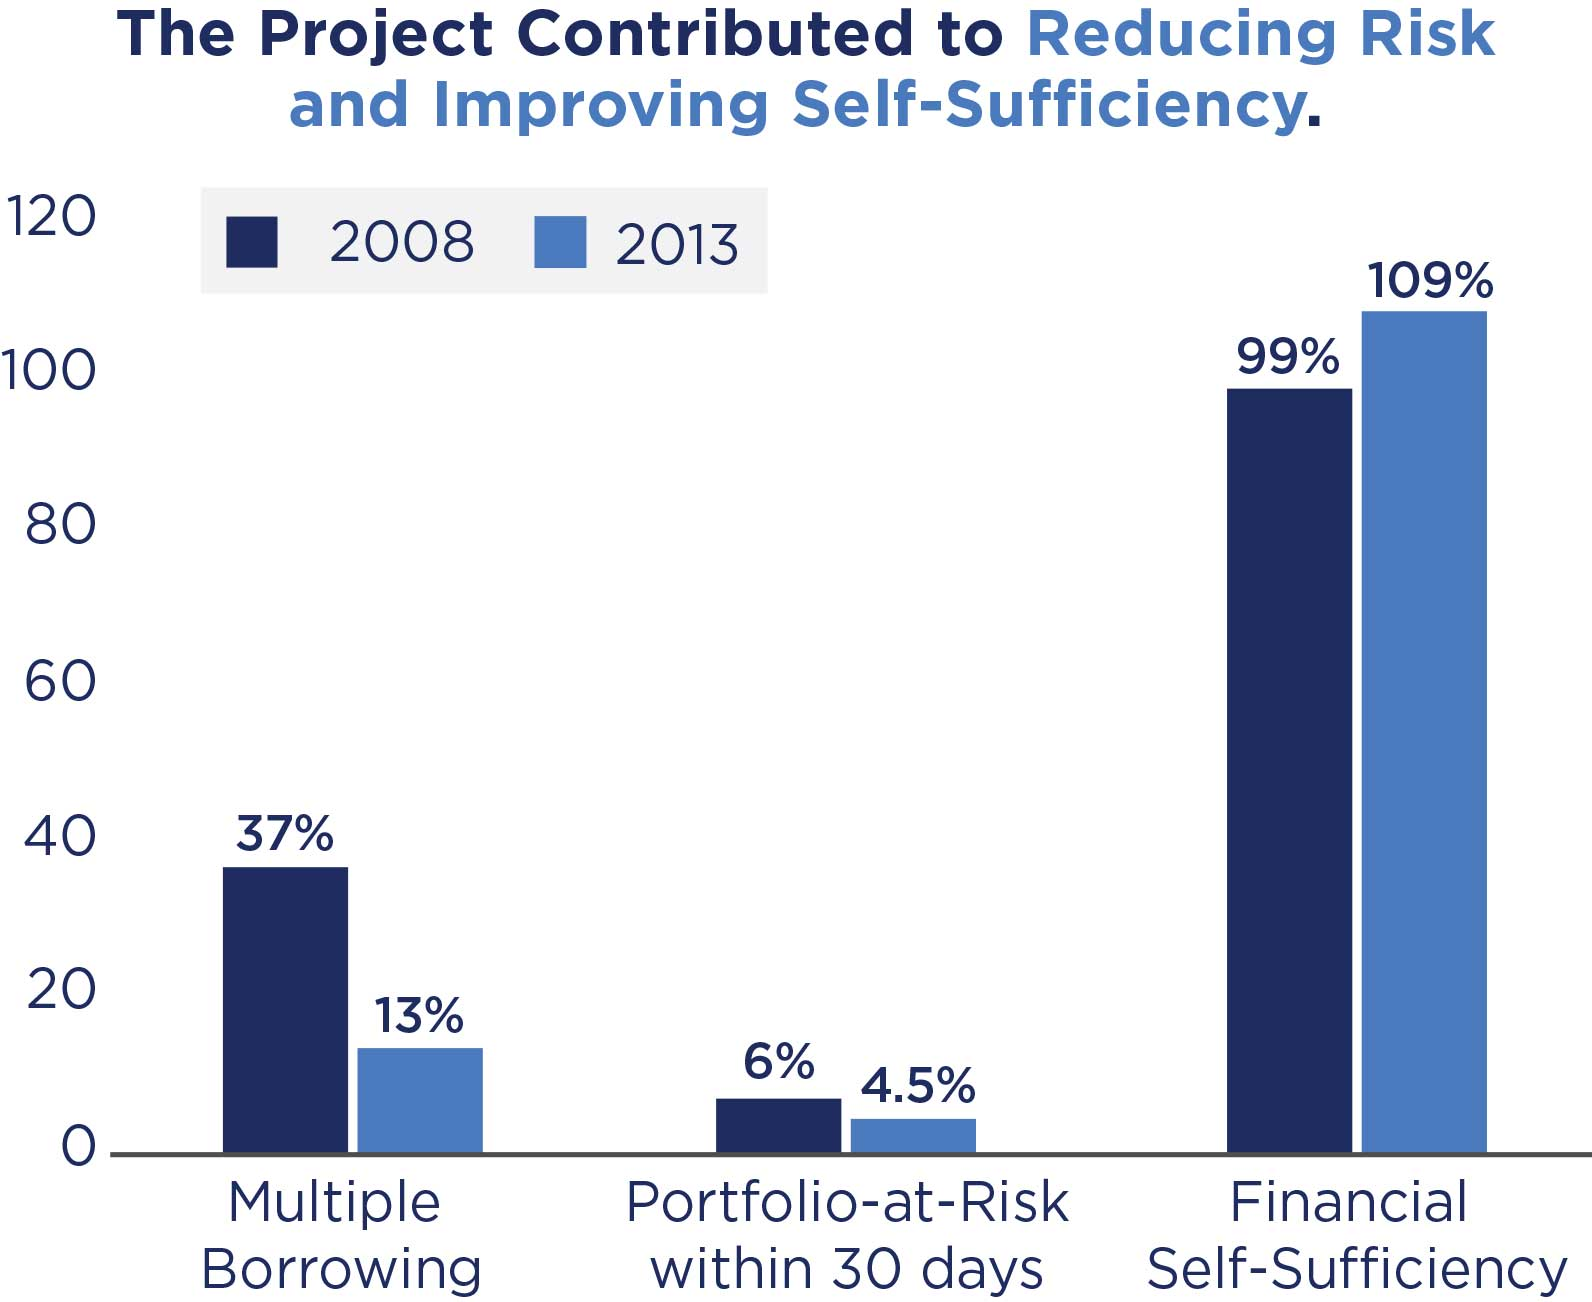 Charts show the project contributed to reducing risk and improving self-suciency.